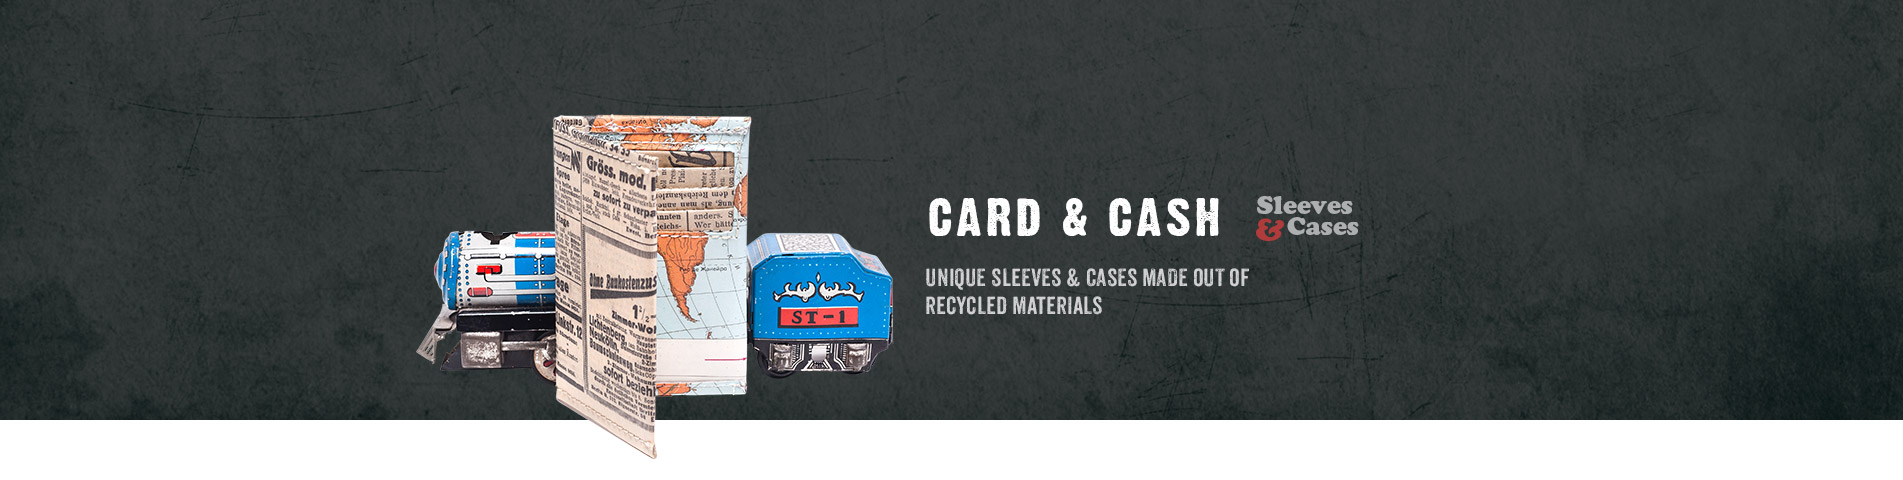 Card & Cash Sleeves